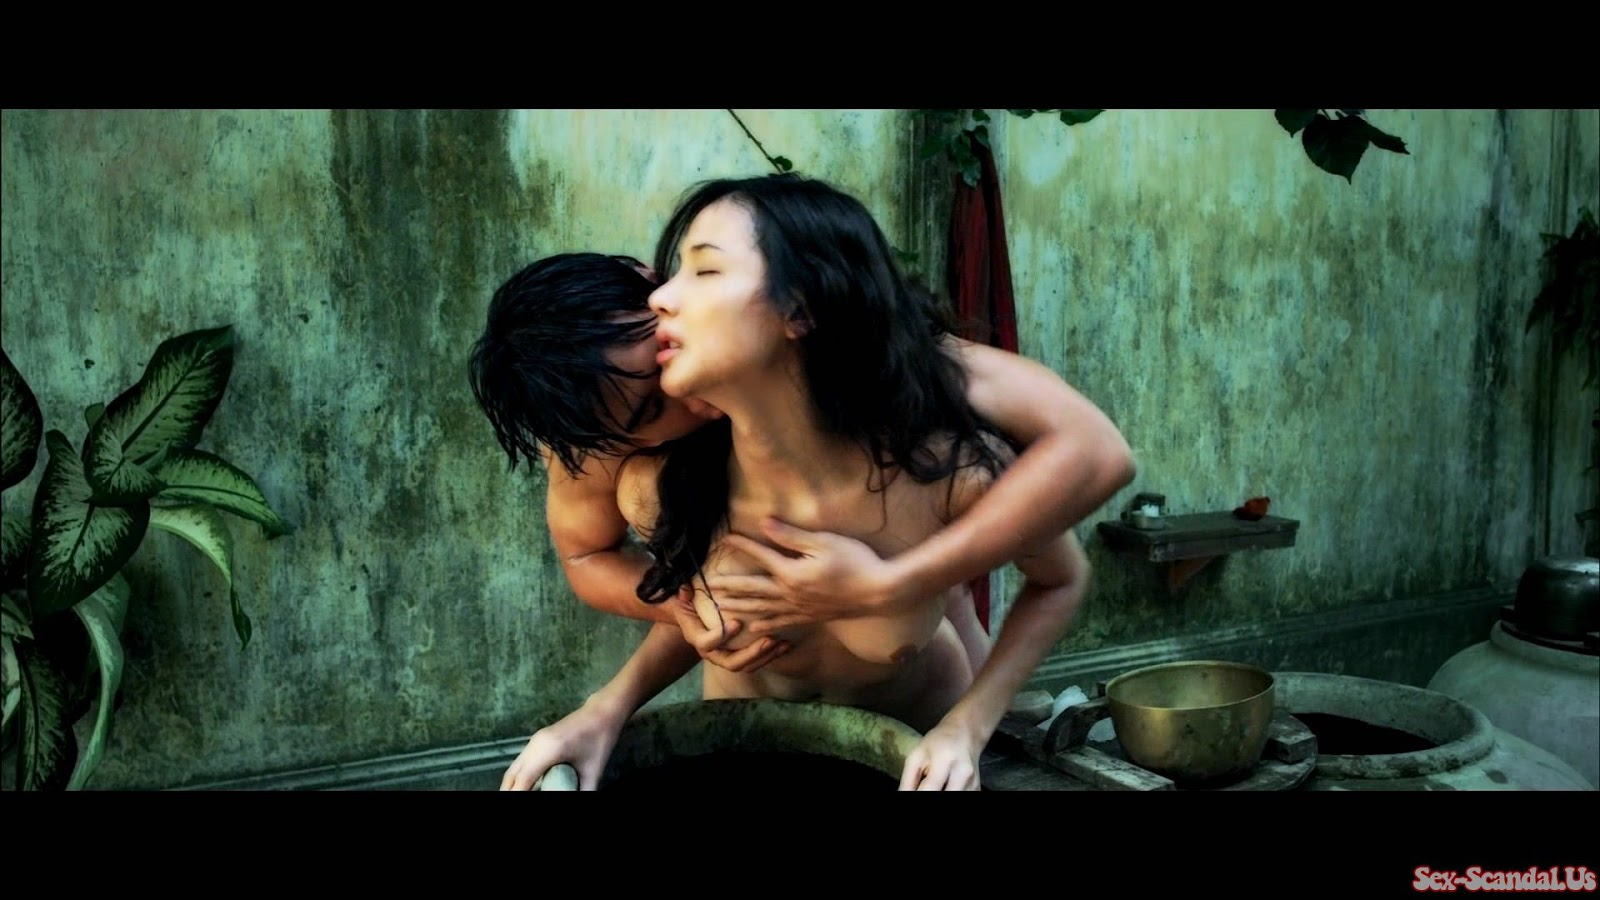 Korea Naked movie sex